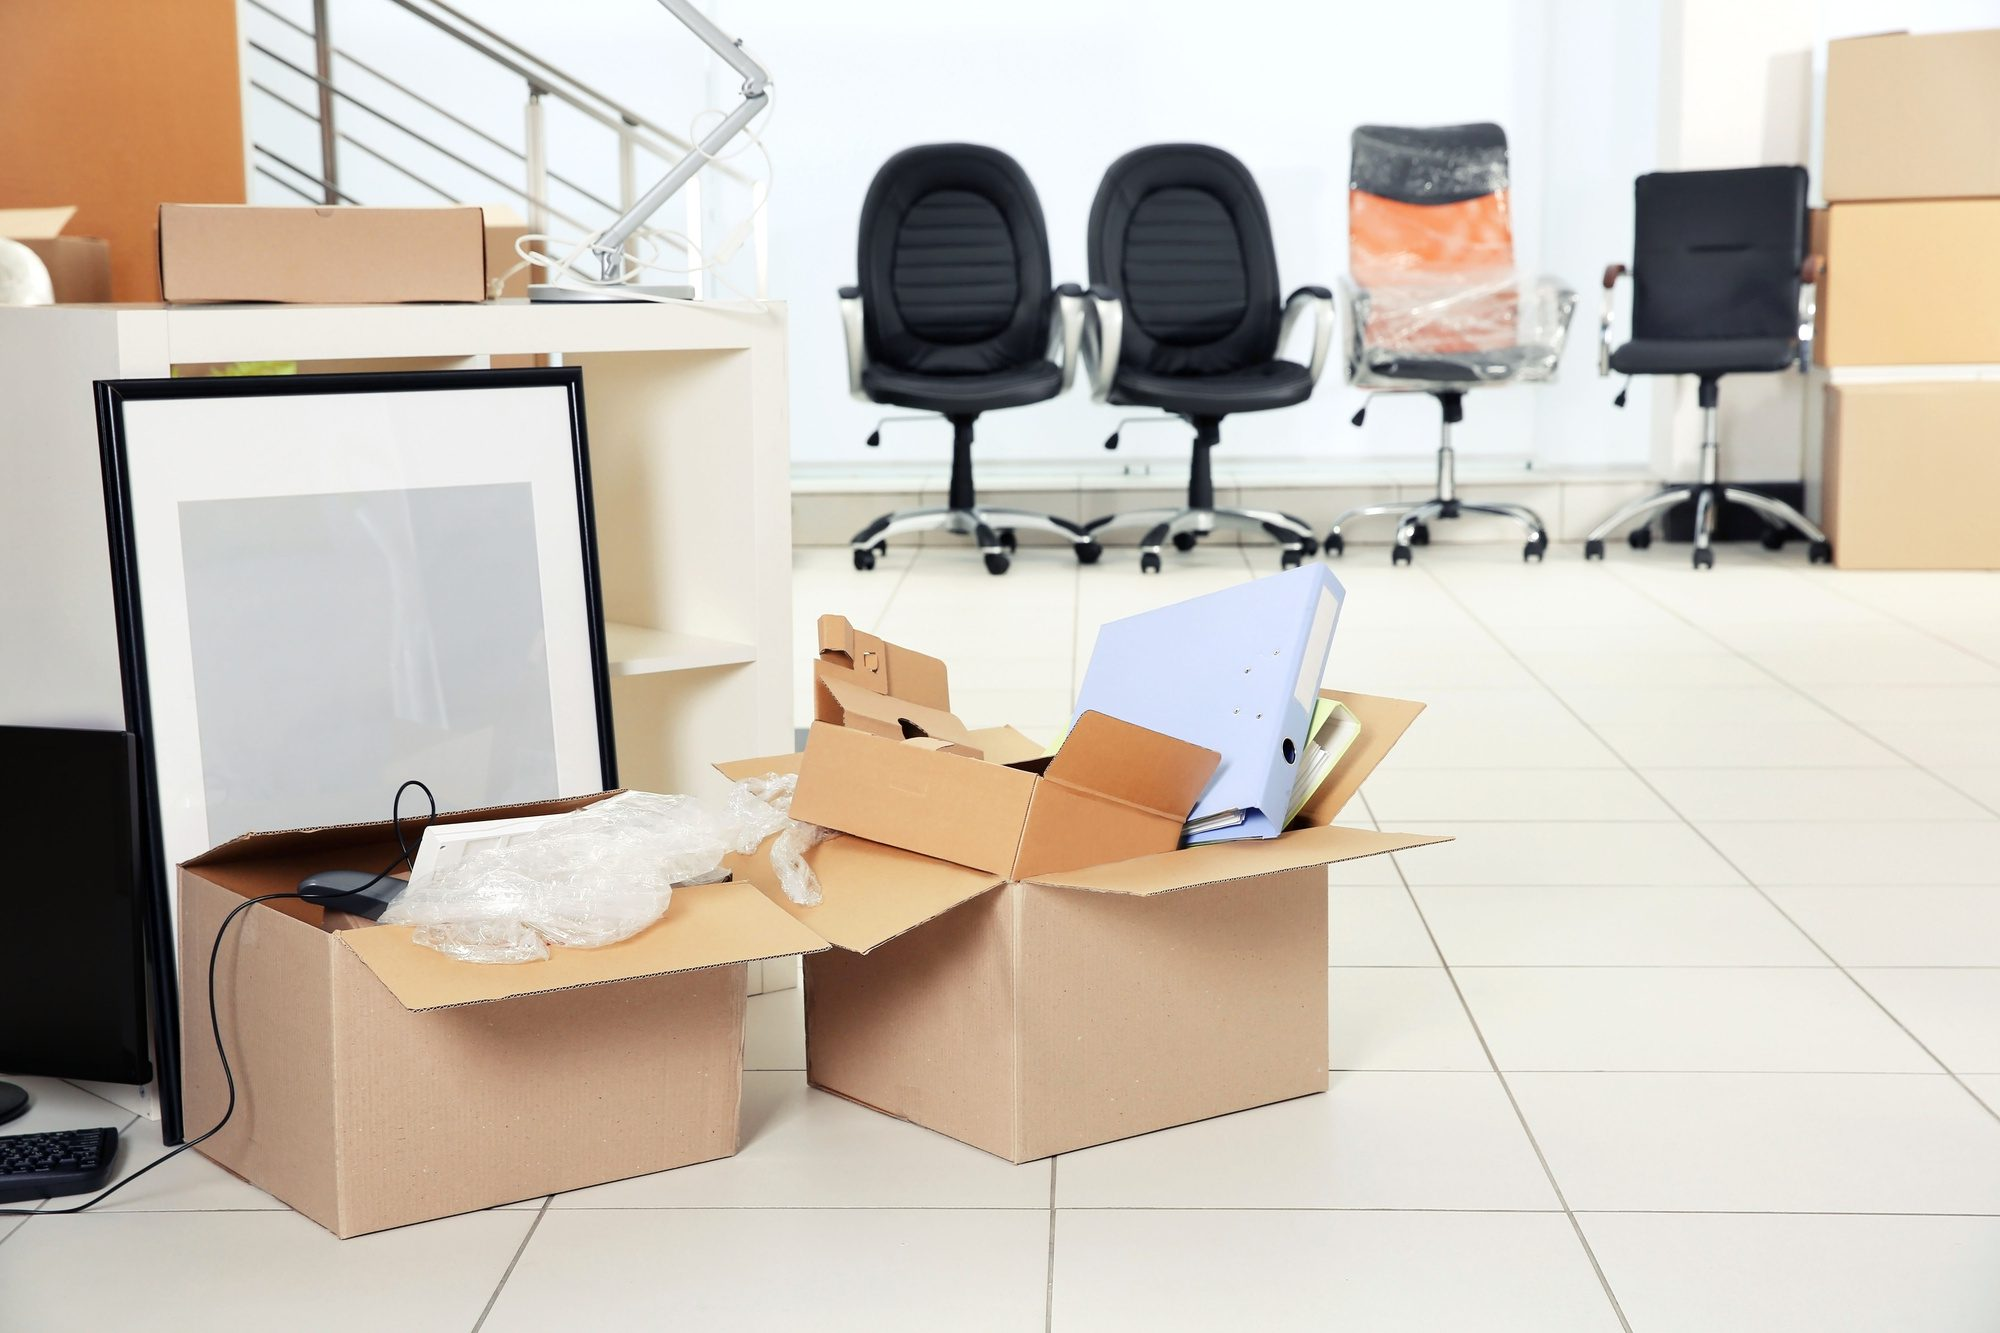 Office Movers move Furniture